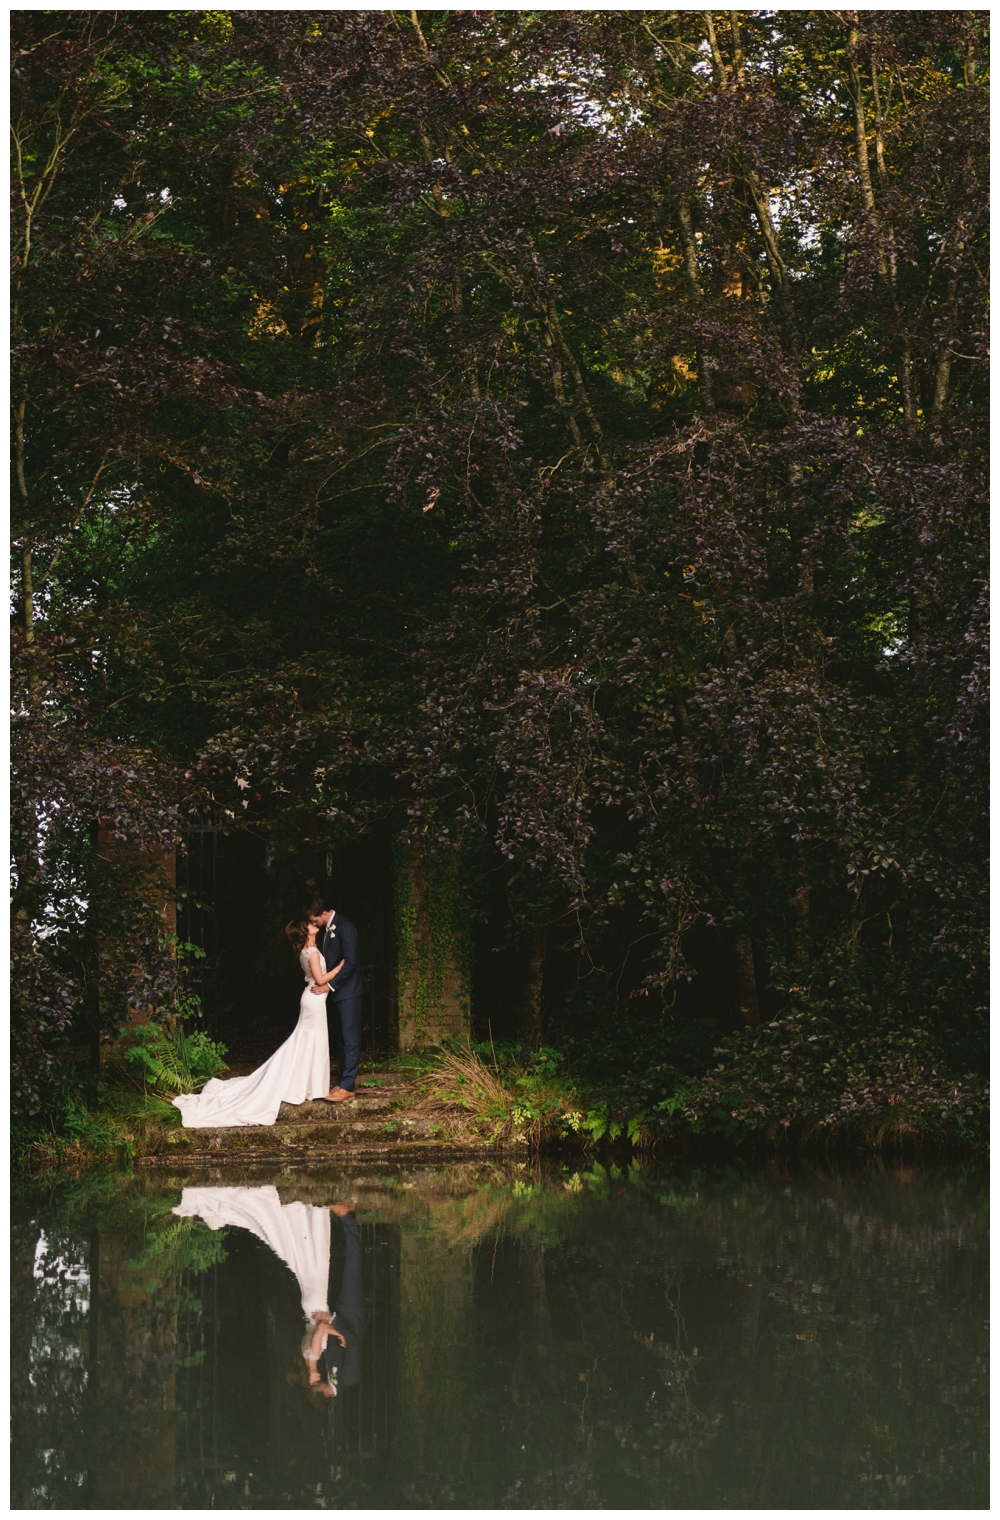 wedding_photographer_northern_ireland_blog_0170.jpg